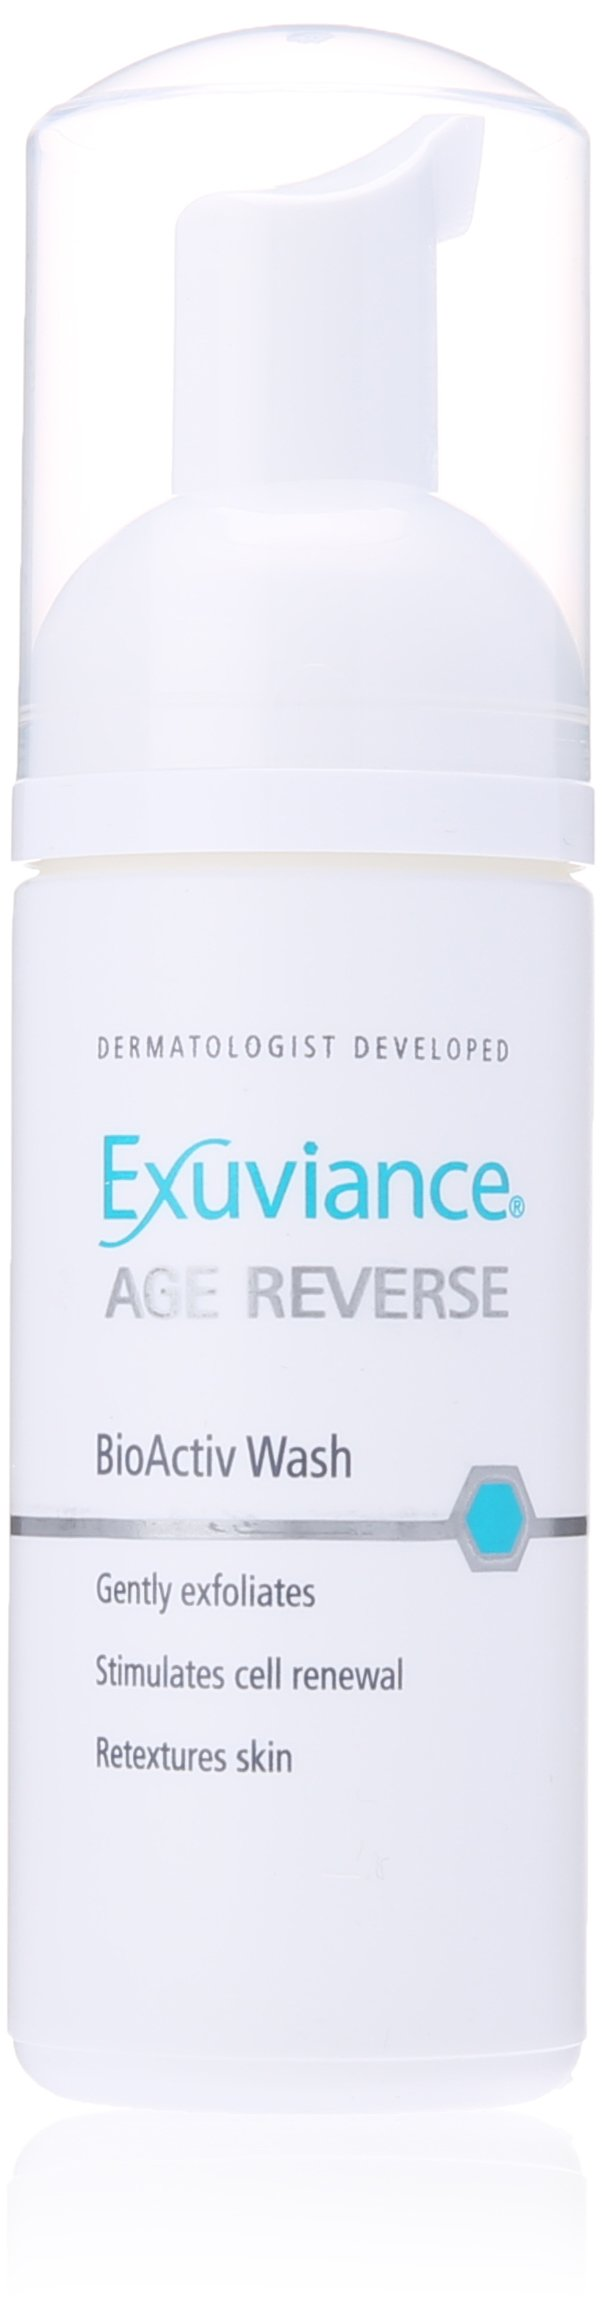 Exuviance Age Reverse Bioactiv Wash, 4.2 Fluid Ounce